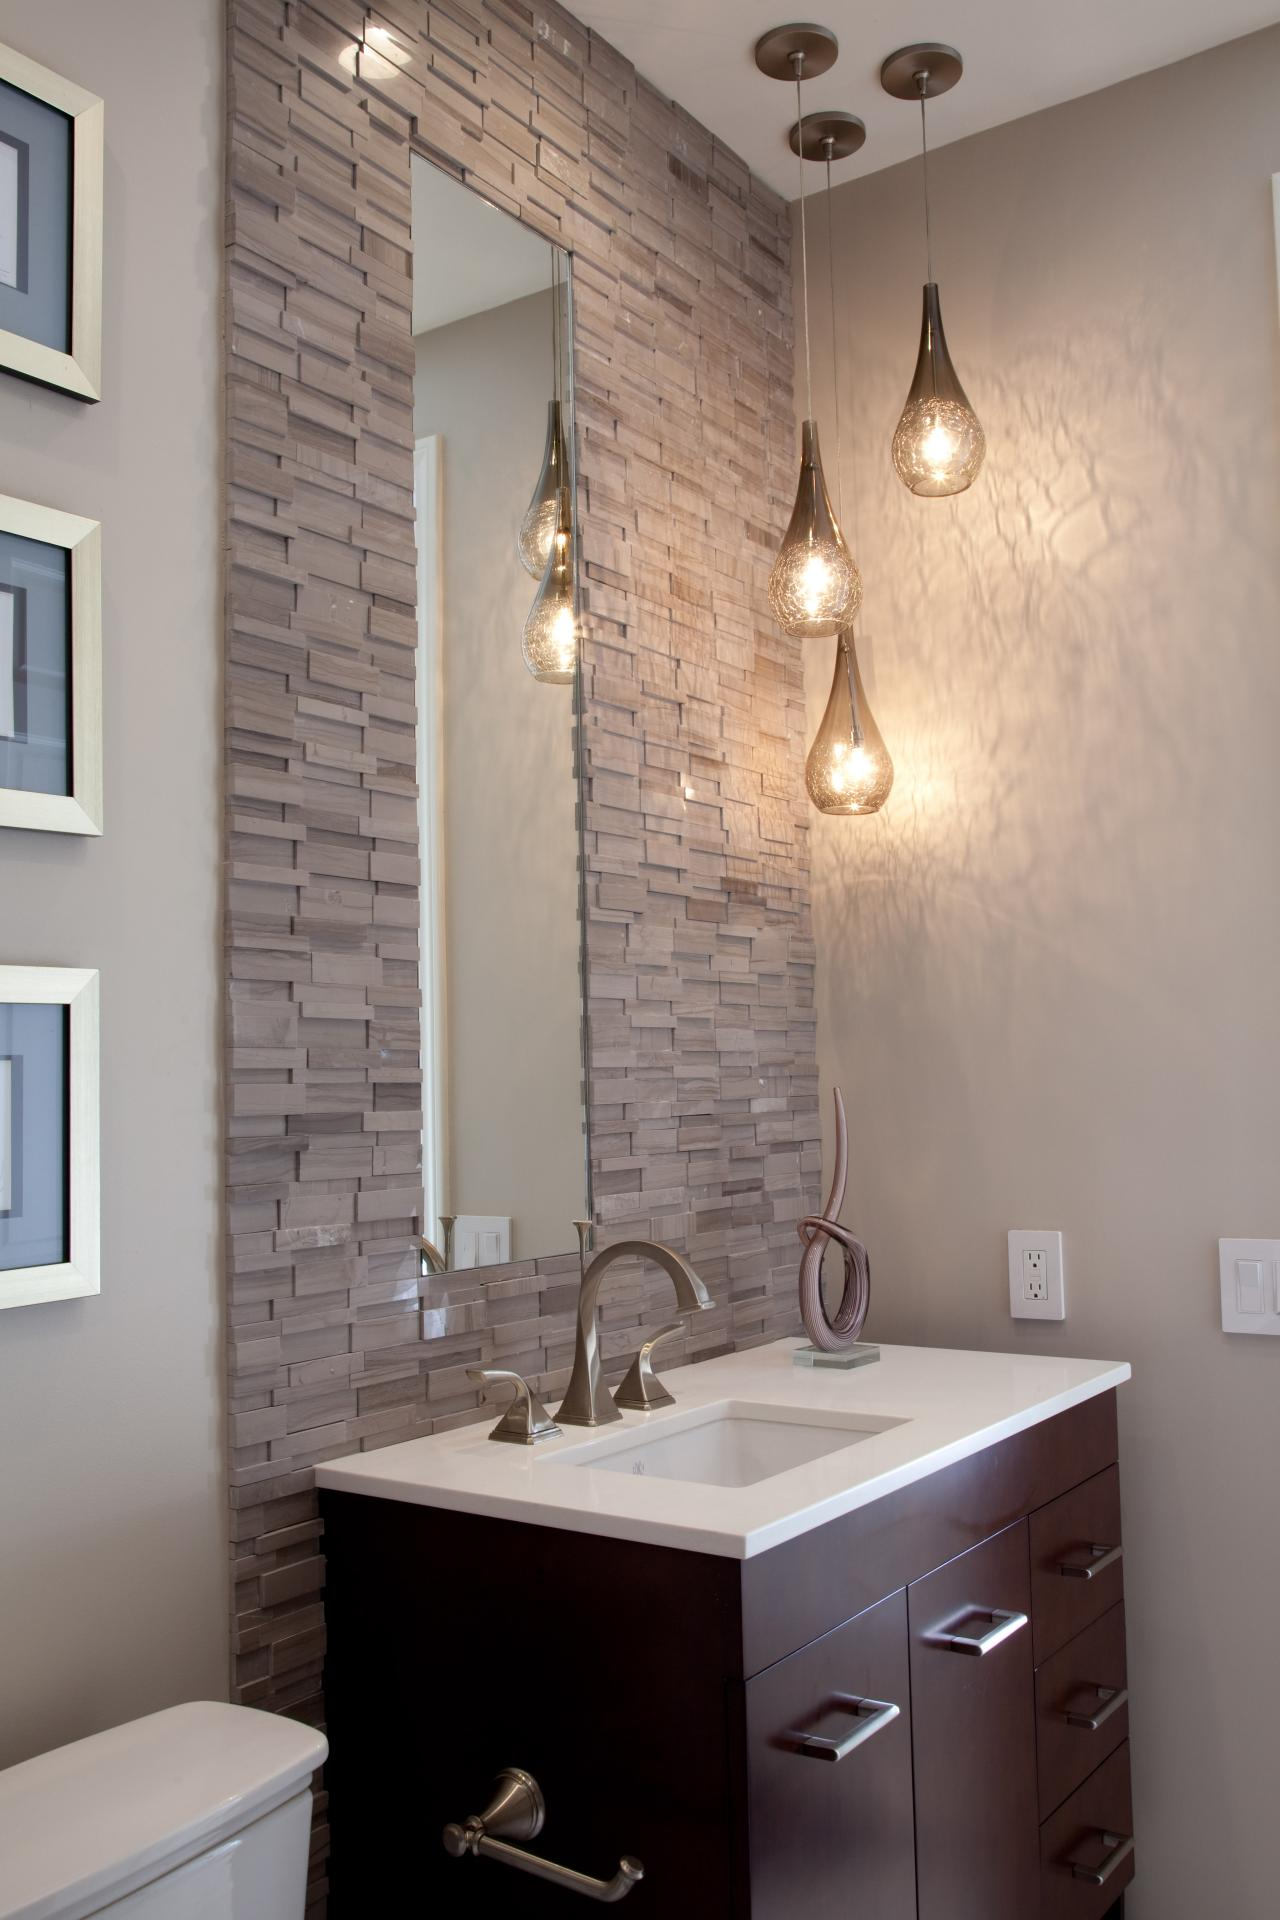 Bathroom Vanity Lighting Trends 2016 nkba bath trends | nkba kitchen + bath trend awards | hgtv